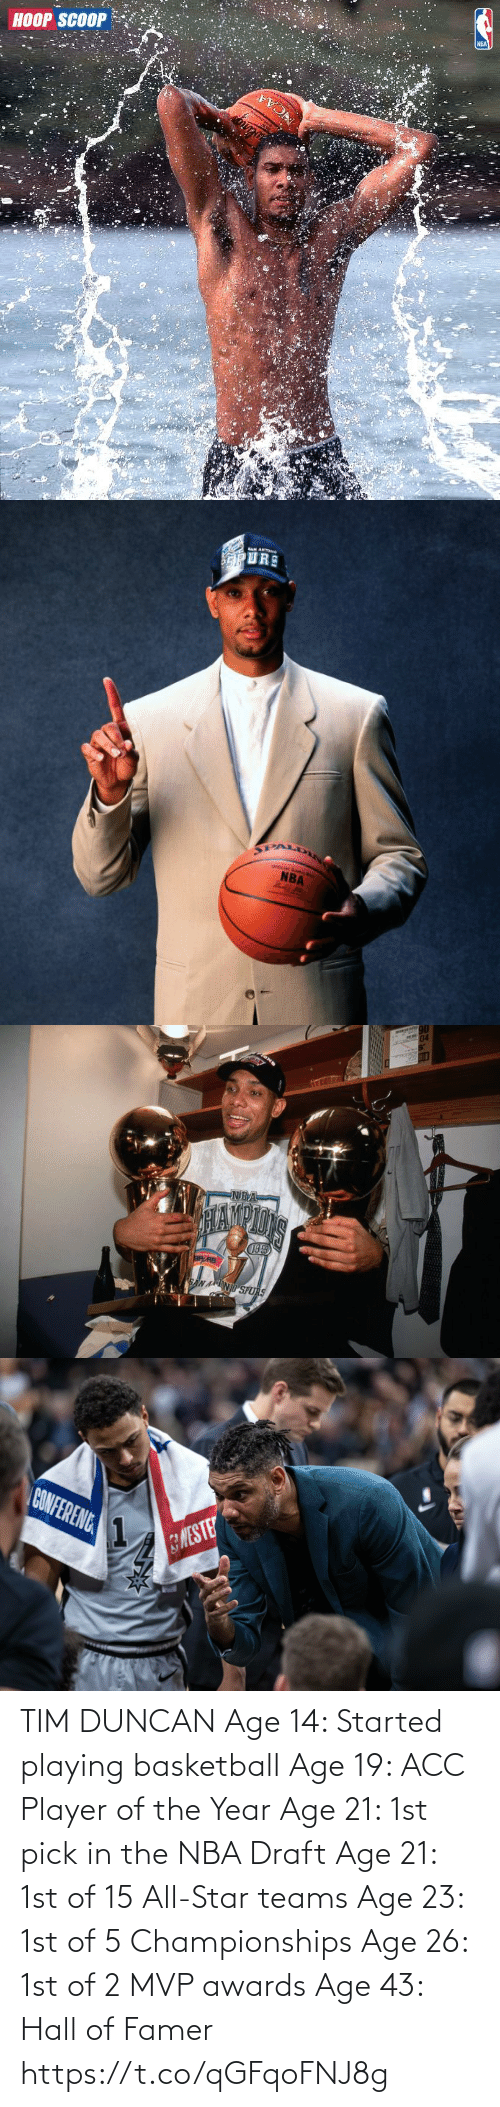 player: TIM DUNCAN  Age 14: Started playing basketball Age 19: ACC Player of the Year Age 21: 1st pick in the NBA Draft Age 21: 1st of 15 All-Star teams Age 23: 1st of 5 Championships Age 26: 1st of 2 MVP awards Age 43: Hall of Famer https://t.co/qGFqoFNJ8g